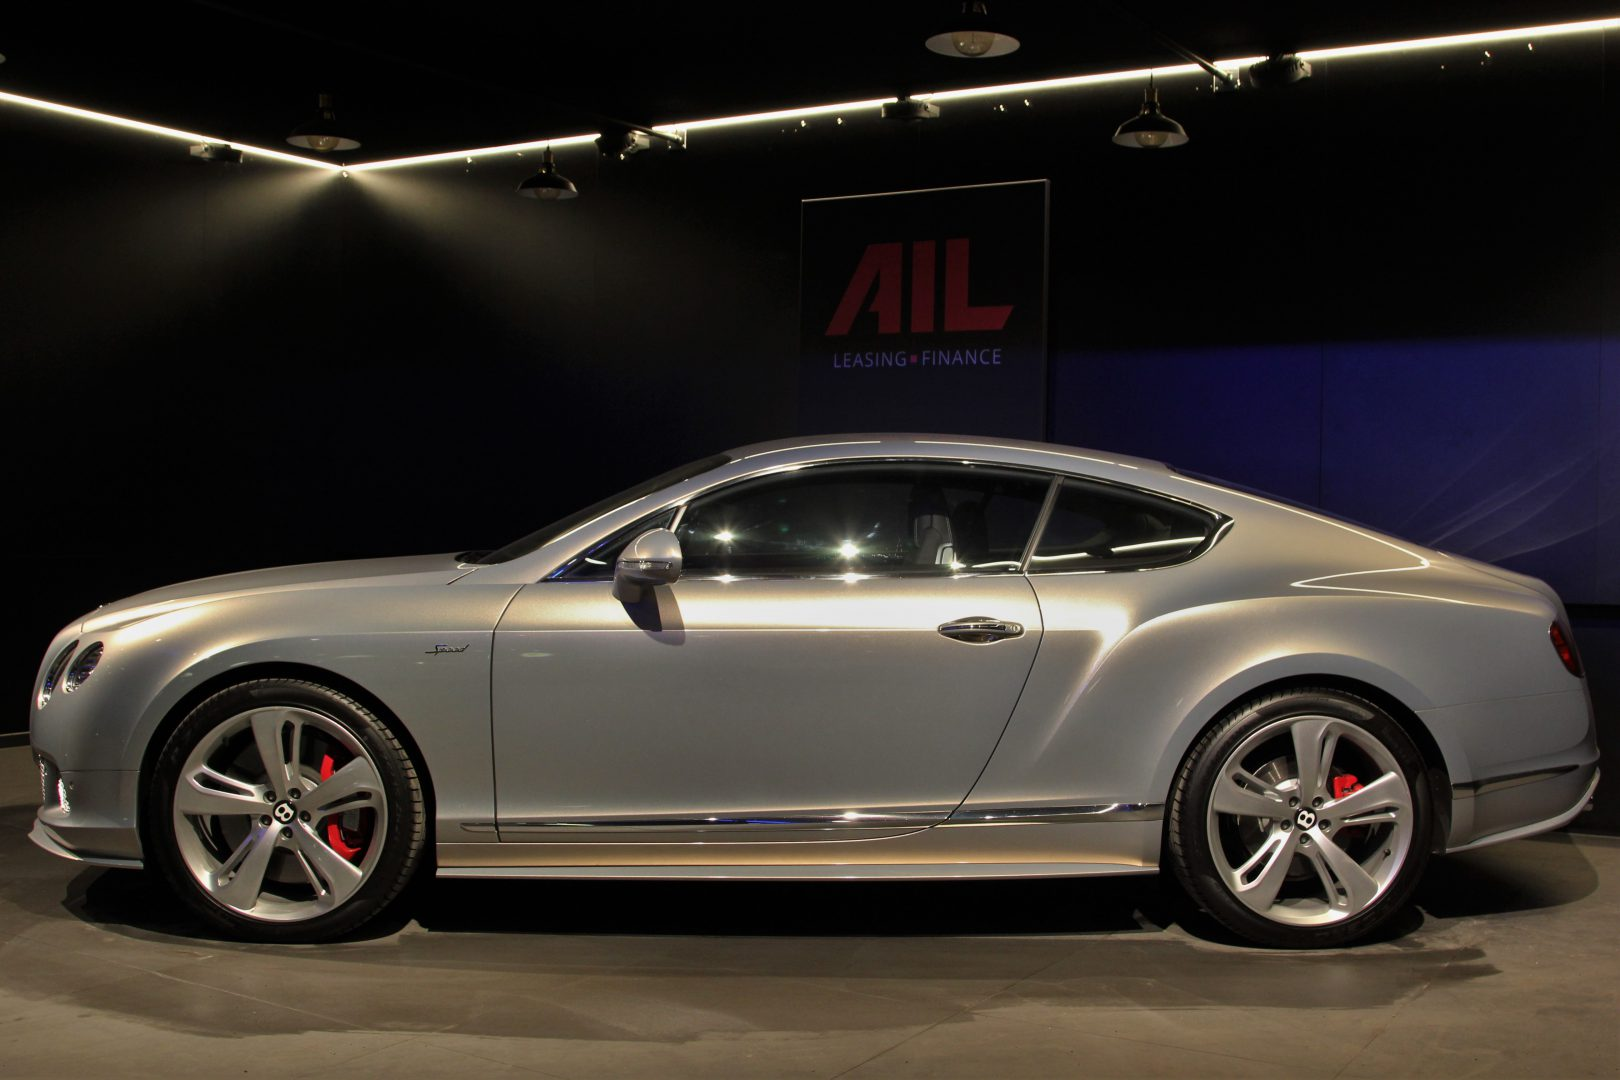 AIL Bentley Continental GT Speed 1